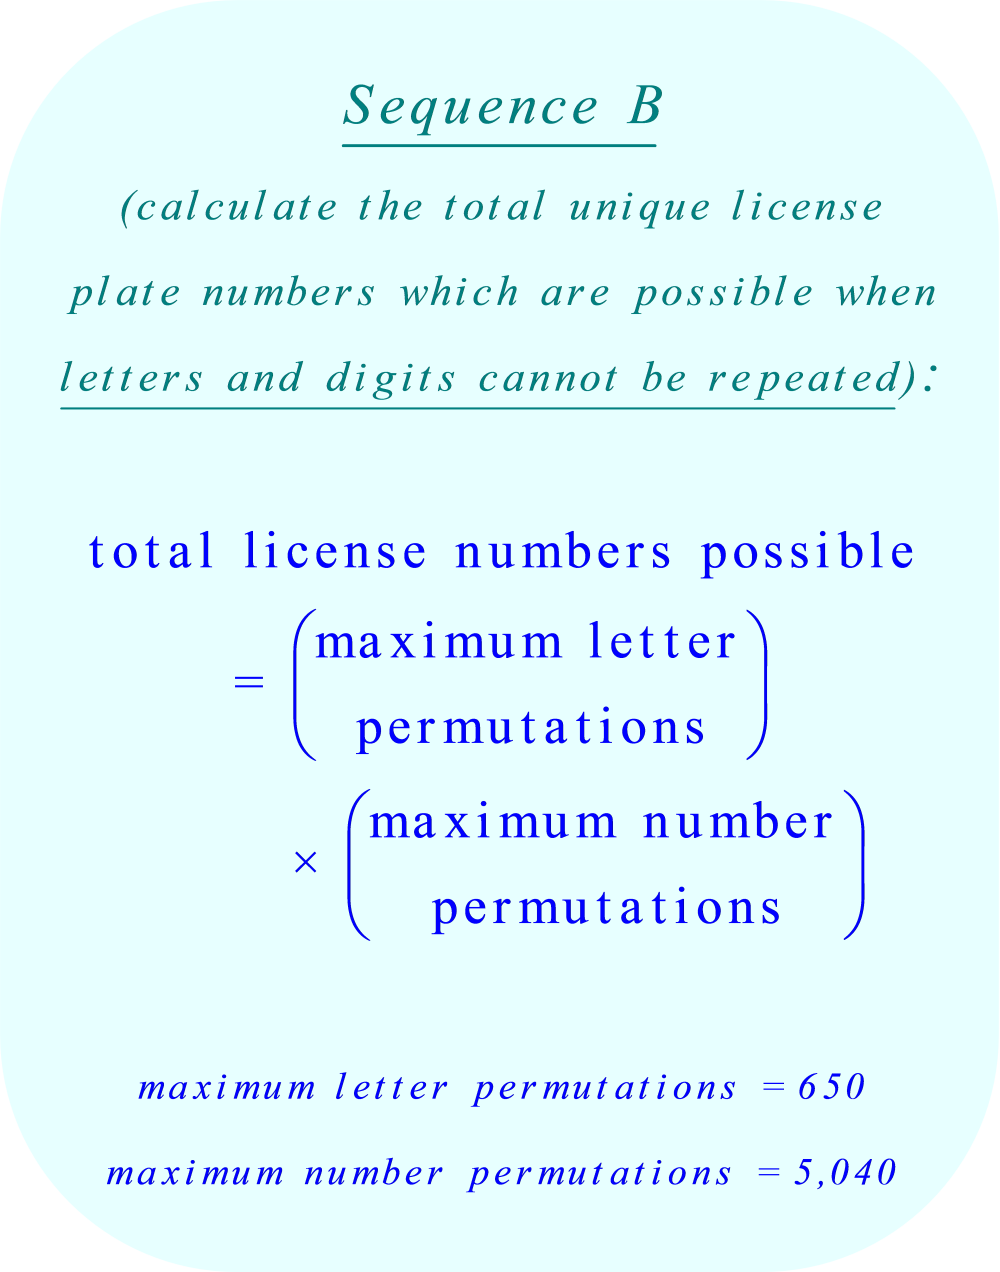 The maximum number of unique license plate numbers when duplicate letters and duplicate numbers are not allowed